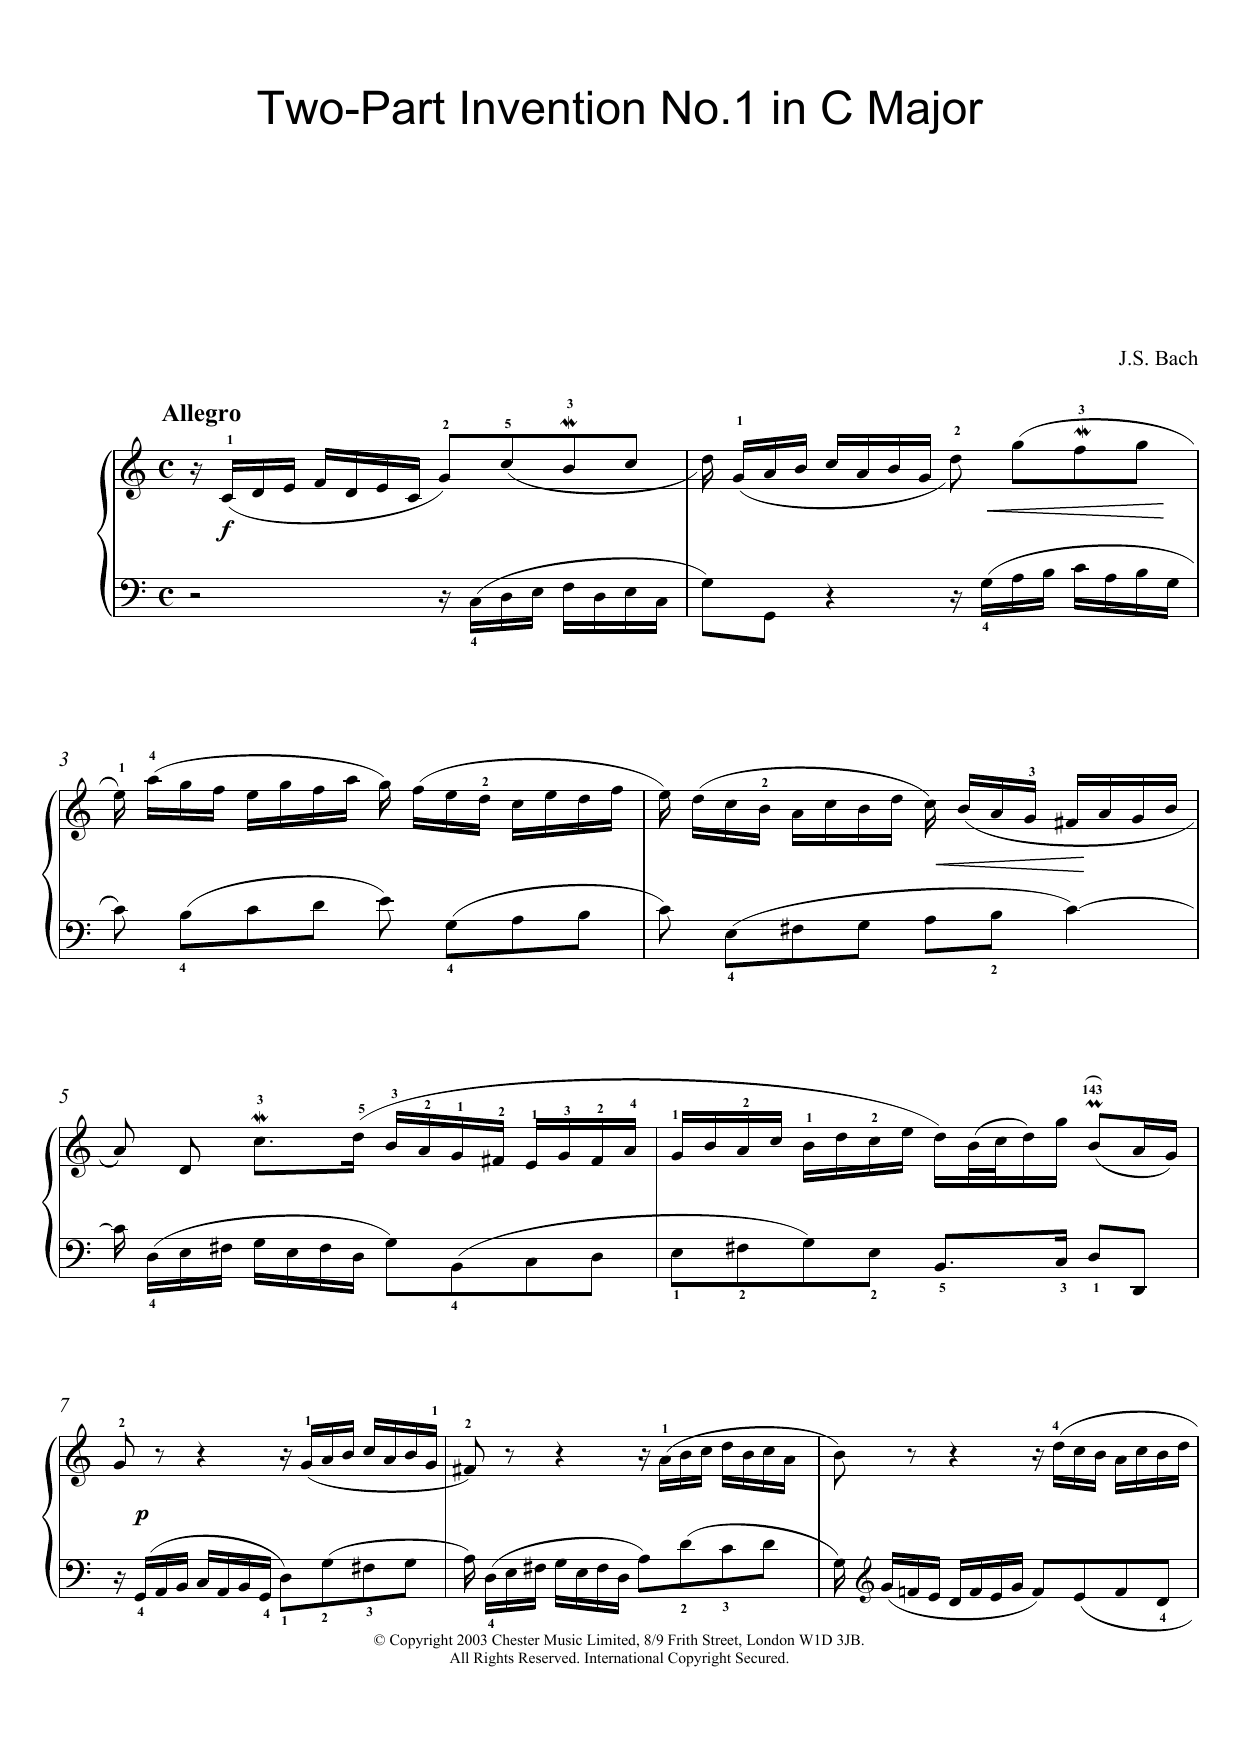 Two-Part Invention No. 1 in C Major Digitale Noten